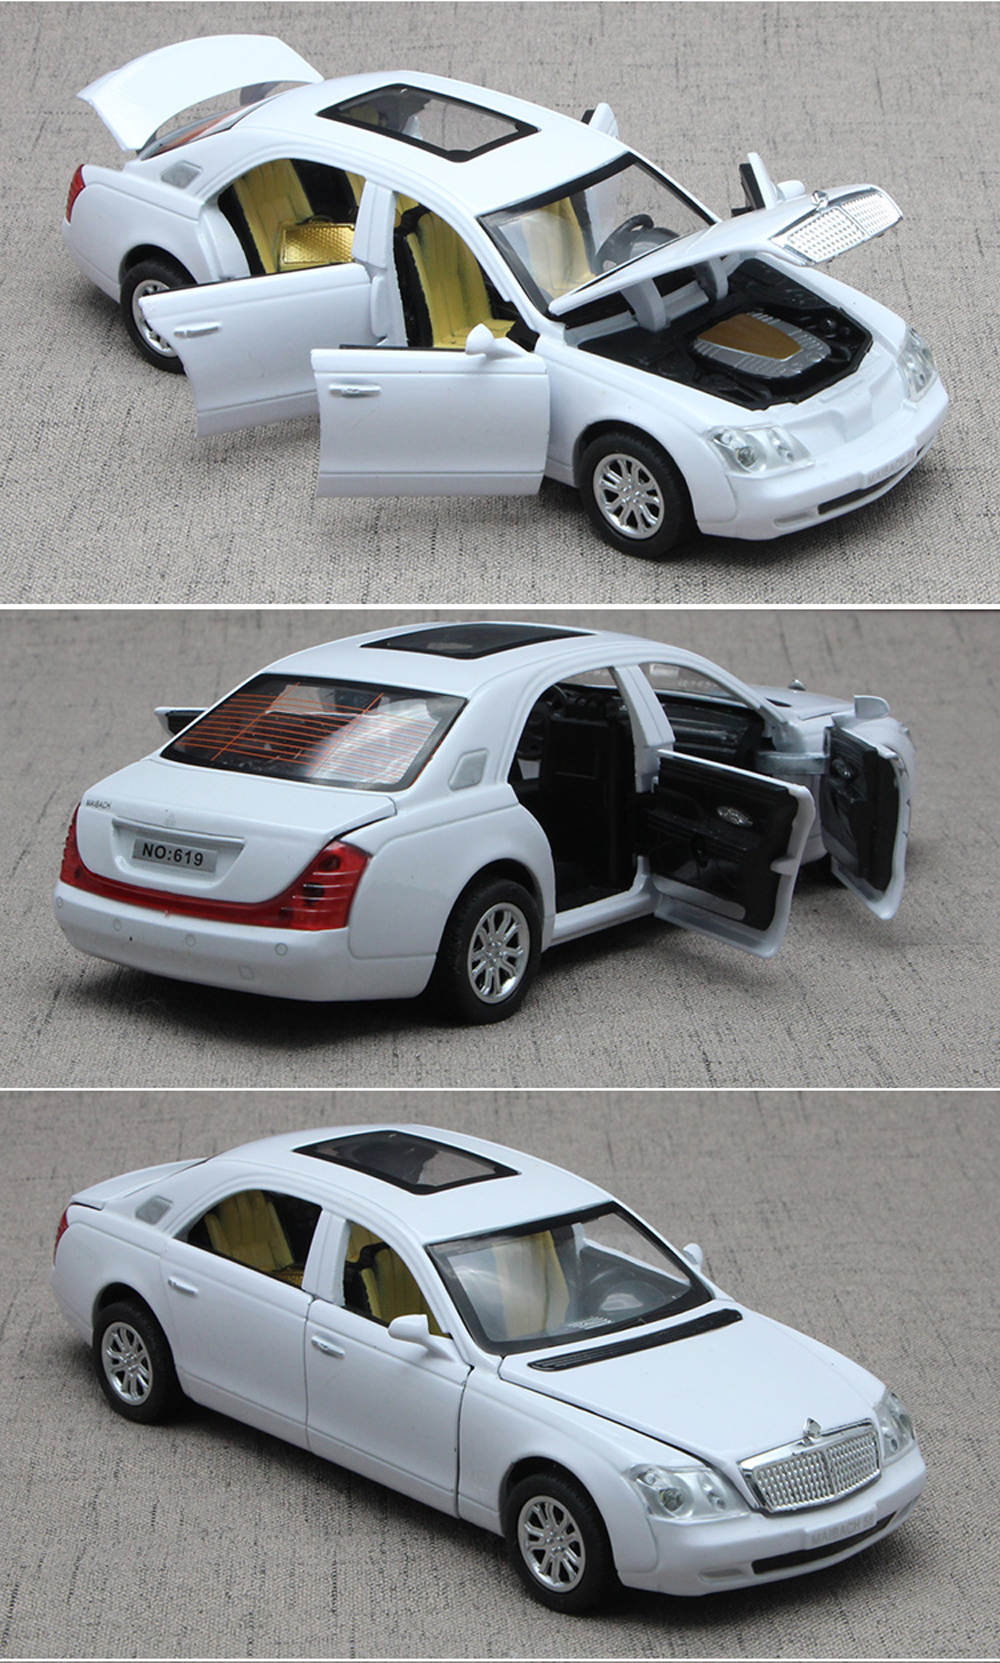 diecast-maybach-model-car-replica-TOy-car_05_05